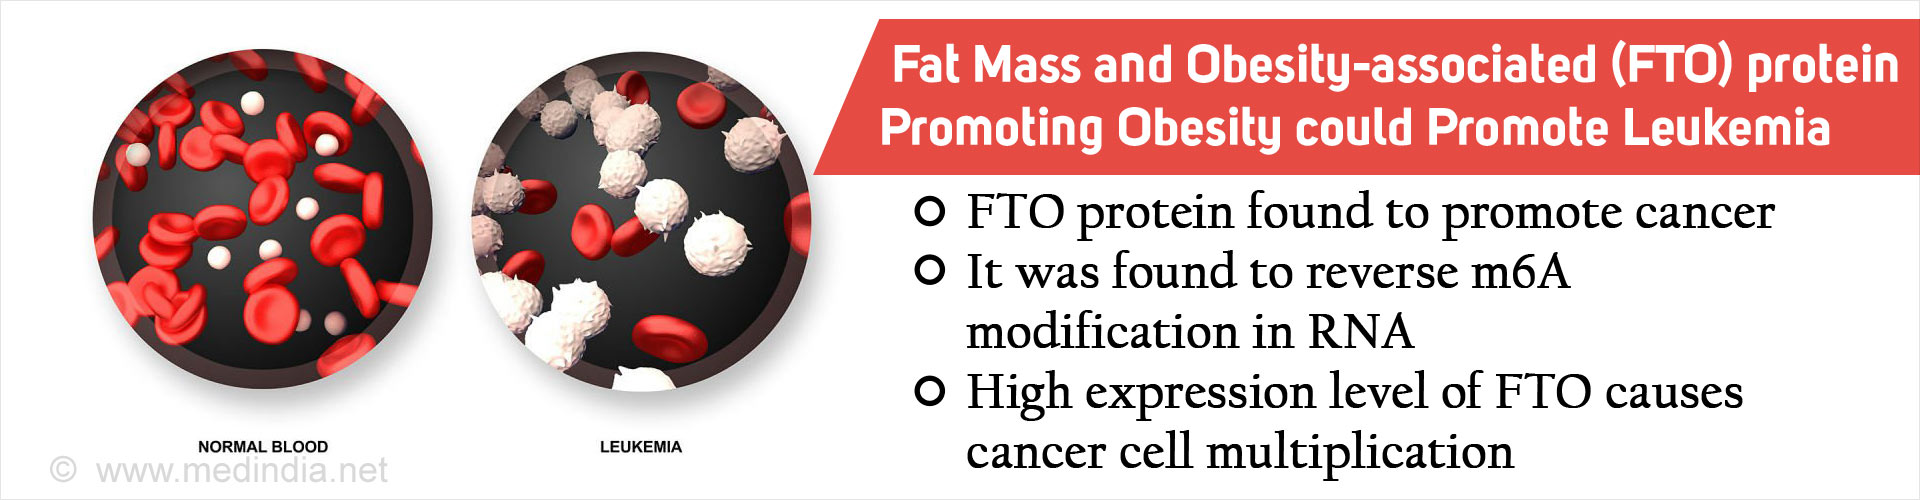 Fat Mass and Obesity-associated (FTO) Protein Linked to Leukemia Risk